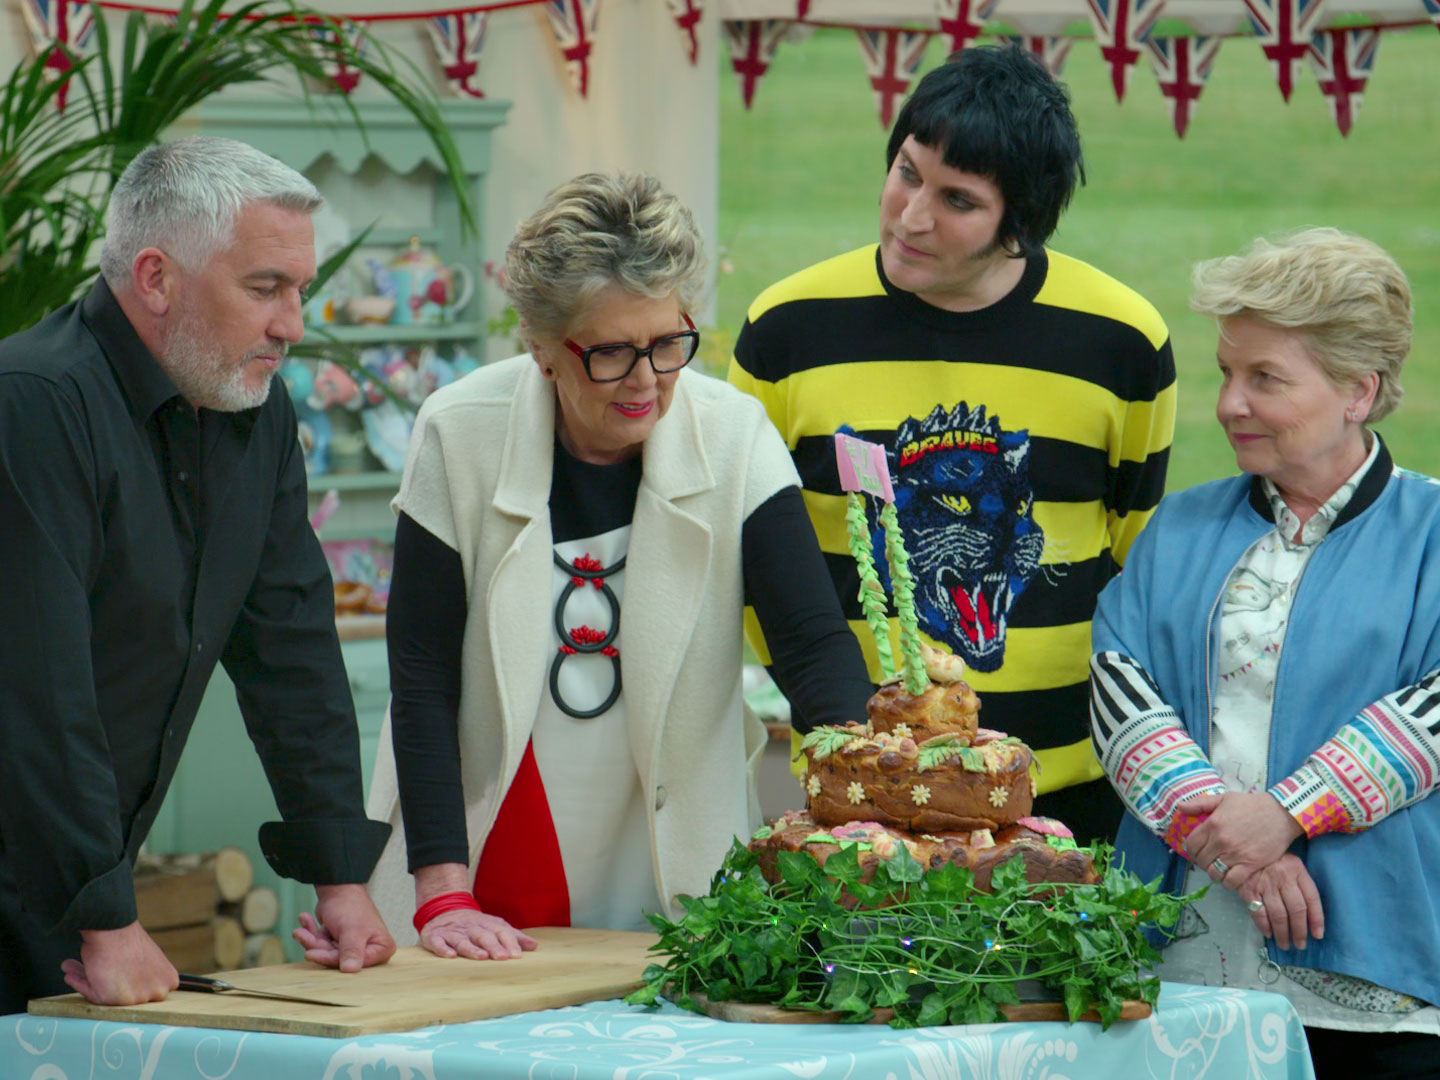 'The Great British Baking Show' Returns to Netflix This Month